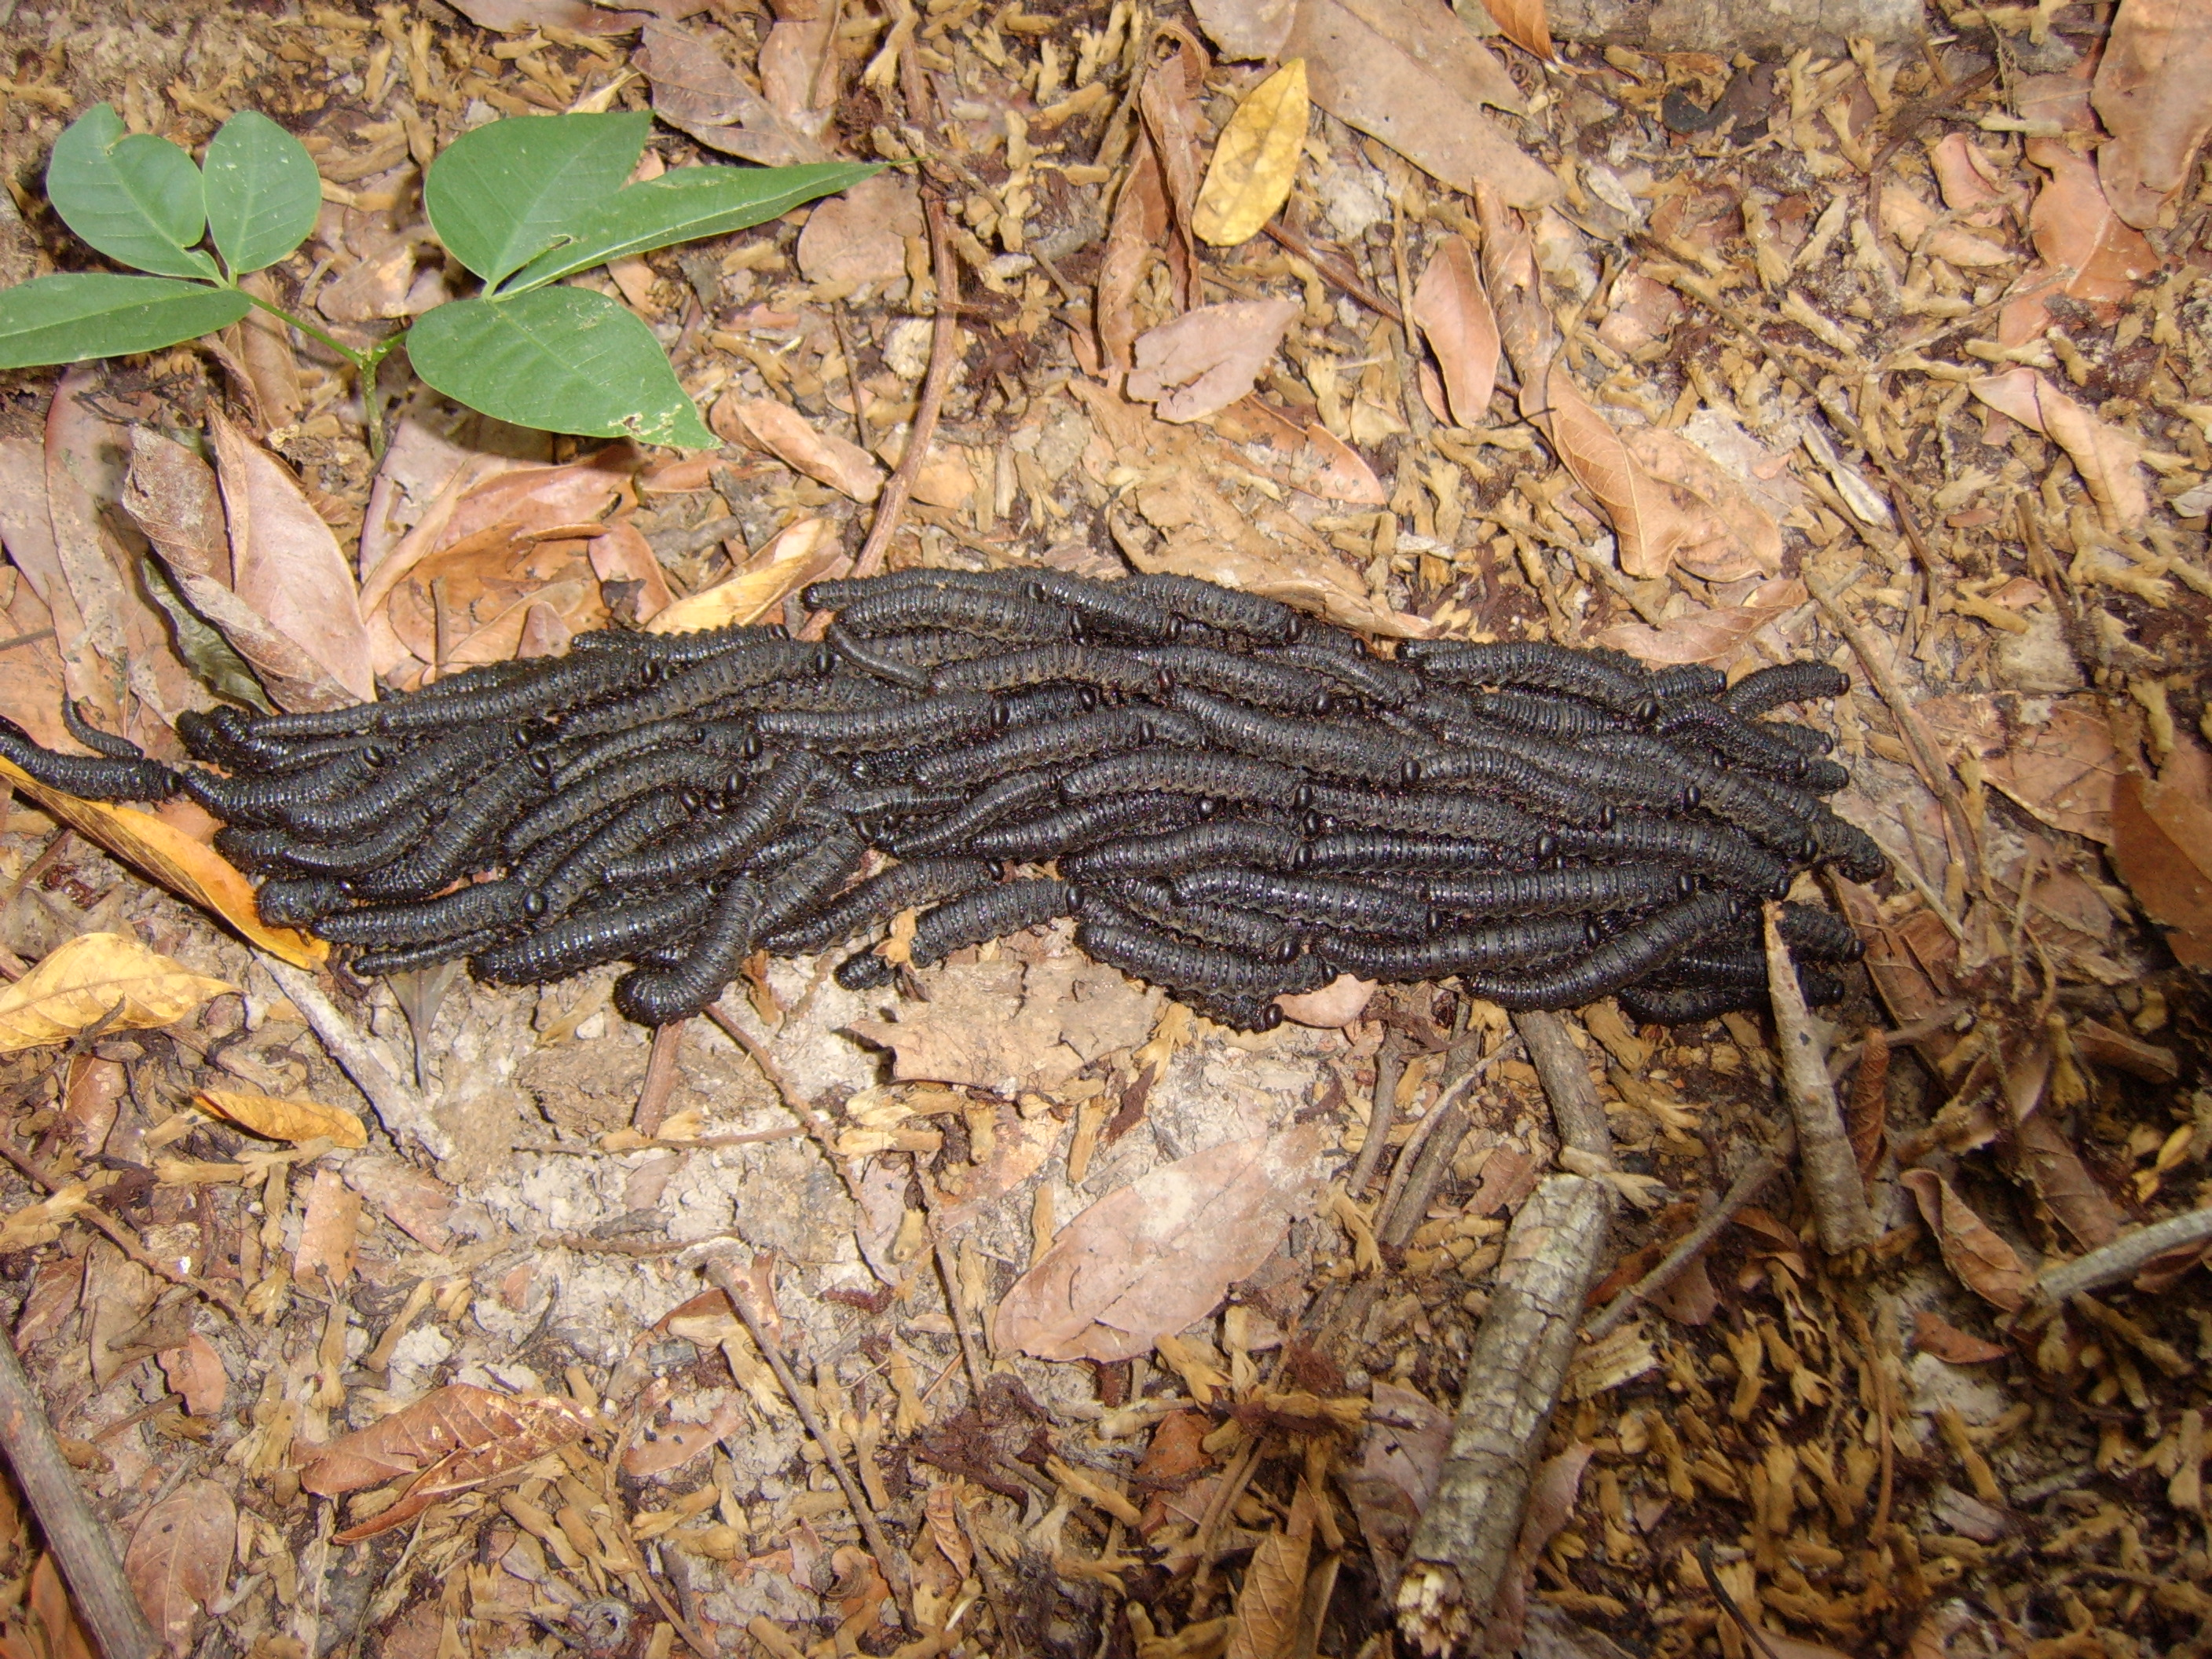 Pictures of Termite Worms http://bio.sunyorange.edu/updated2/paraguay/invert/i_insect.htm